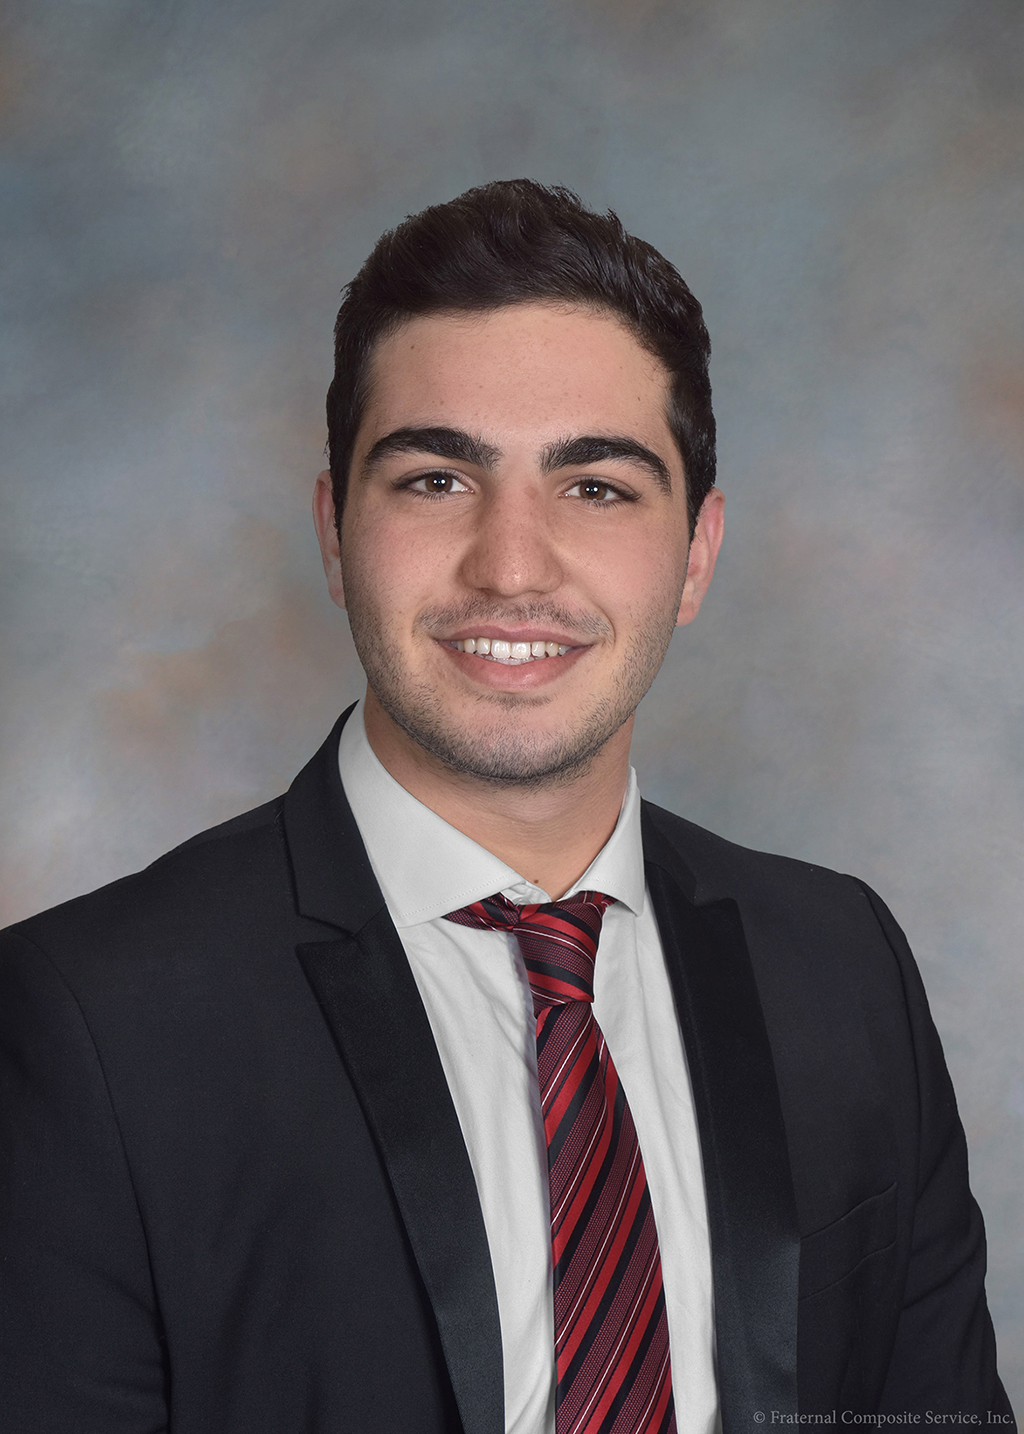 Maher Abdel Samad  | Class of 2021   Hometown:  Beirut, Lebanon   Majoring in  M&T - Wharton: Finance & Business Analytics, SEAS: Systems Engineering   Lazard : Incoming Investment Banking Summer Analyst   Nexxus Holdings : Quantitative Summer Analyst   Groups & Societies:  ESE 204 TA, Penn Arabs, Kite and Key Society, Lebanese Club, International Student Table on Advocacy and Relations, OPA Fellow   Interests:  EDM, Dogs, Food, Travel, Galantis, Setting things on fire, Coffee, Theoretical Astrophysics